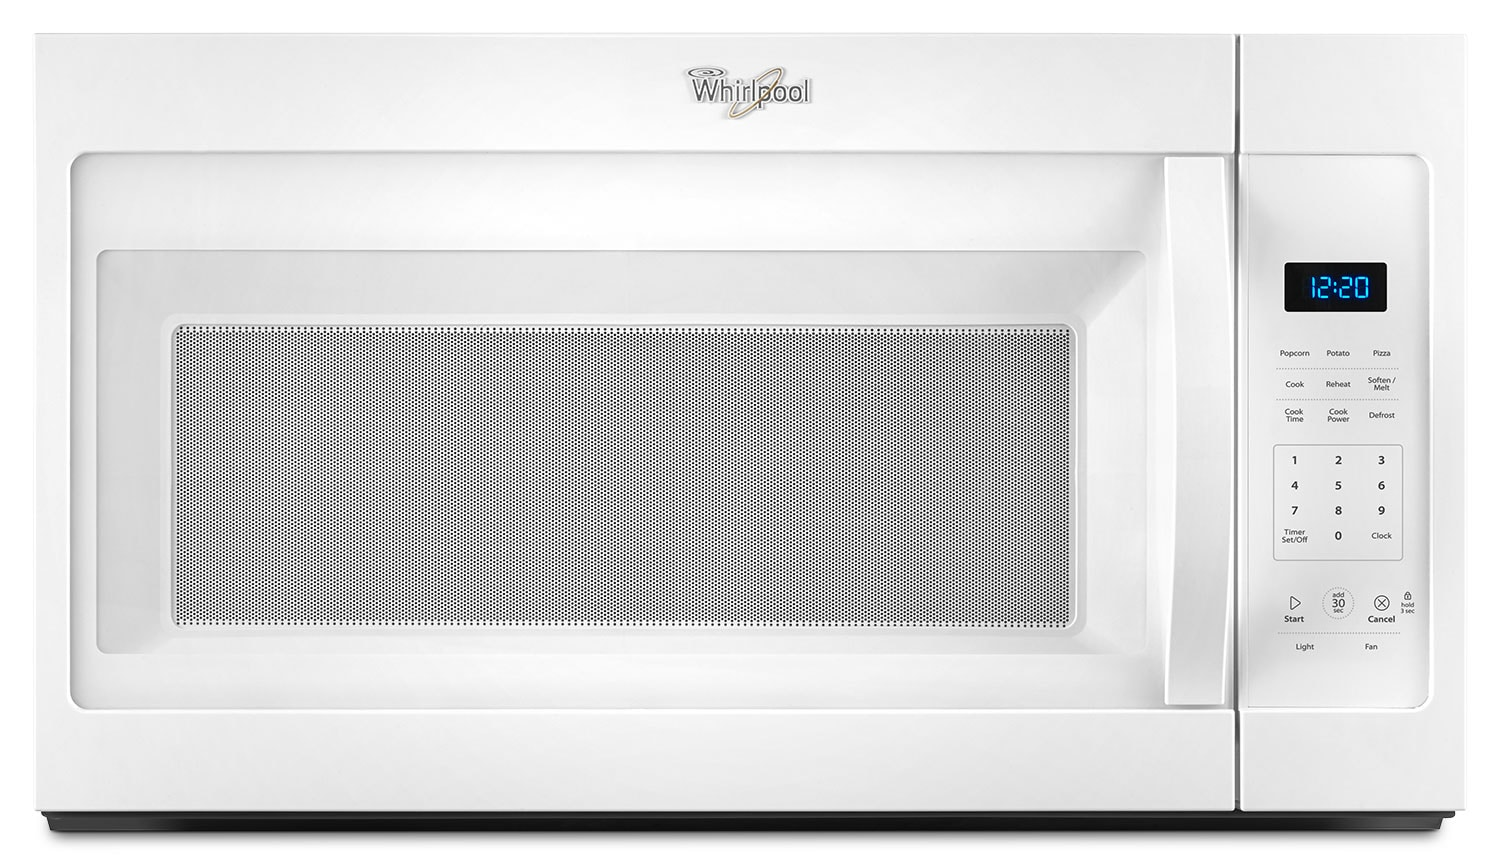 Whirlpool White Over-the-Range Microwave (1.7 Cu. Ft.) - YWMH31017FW